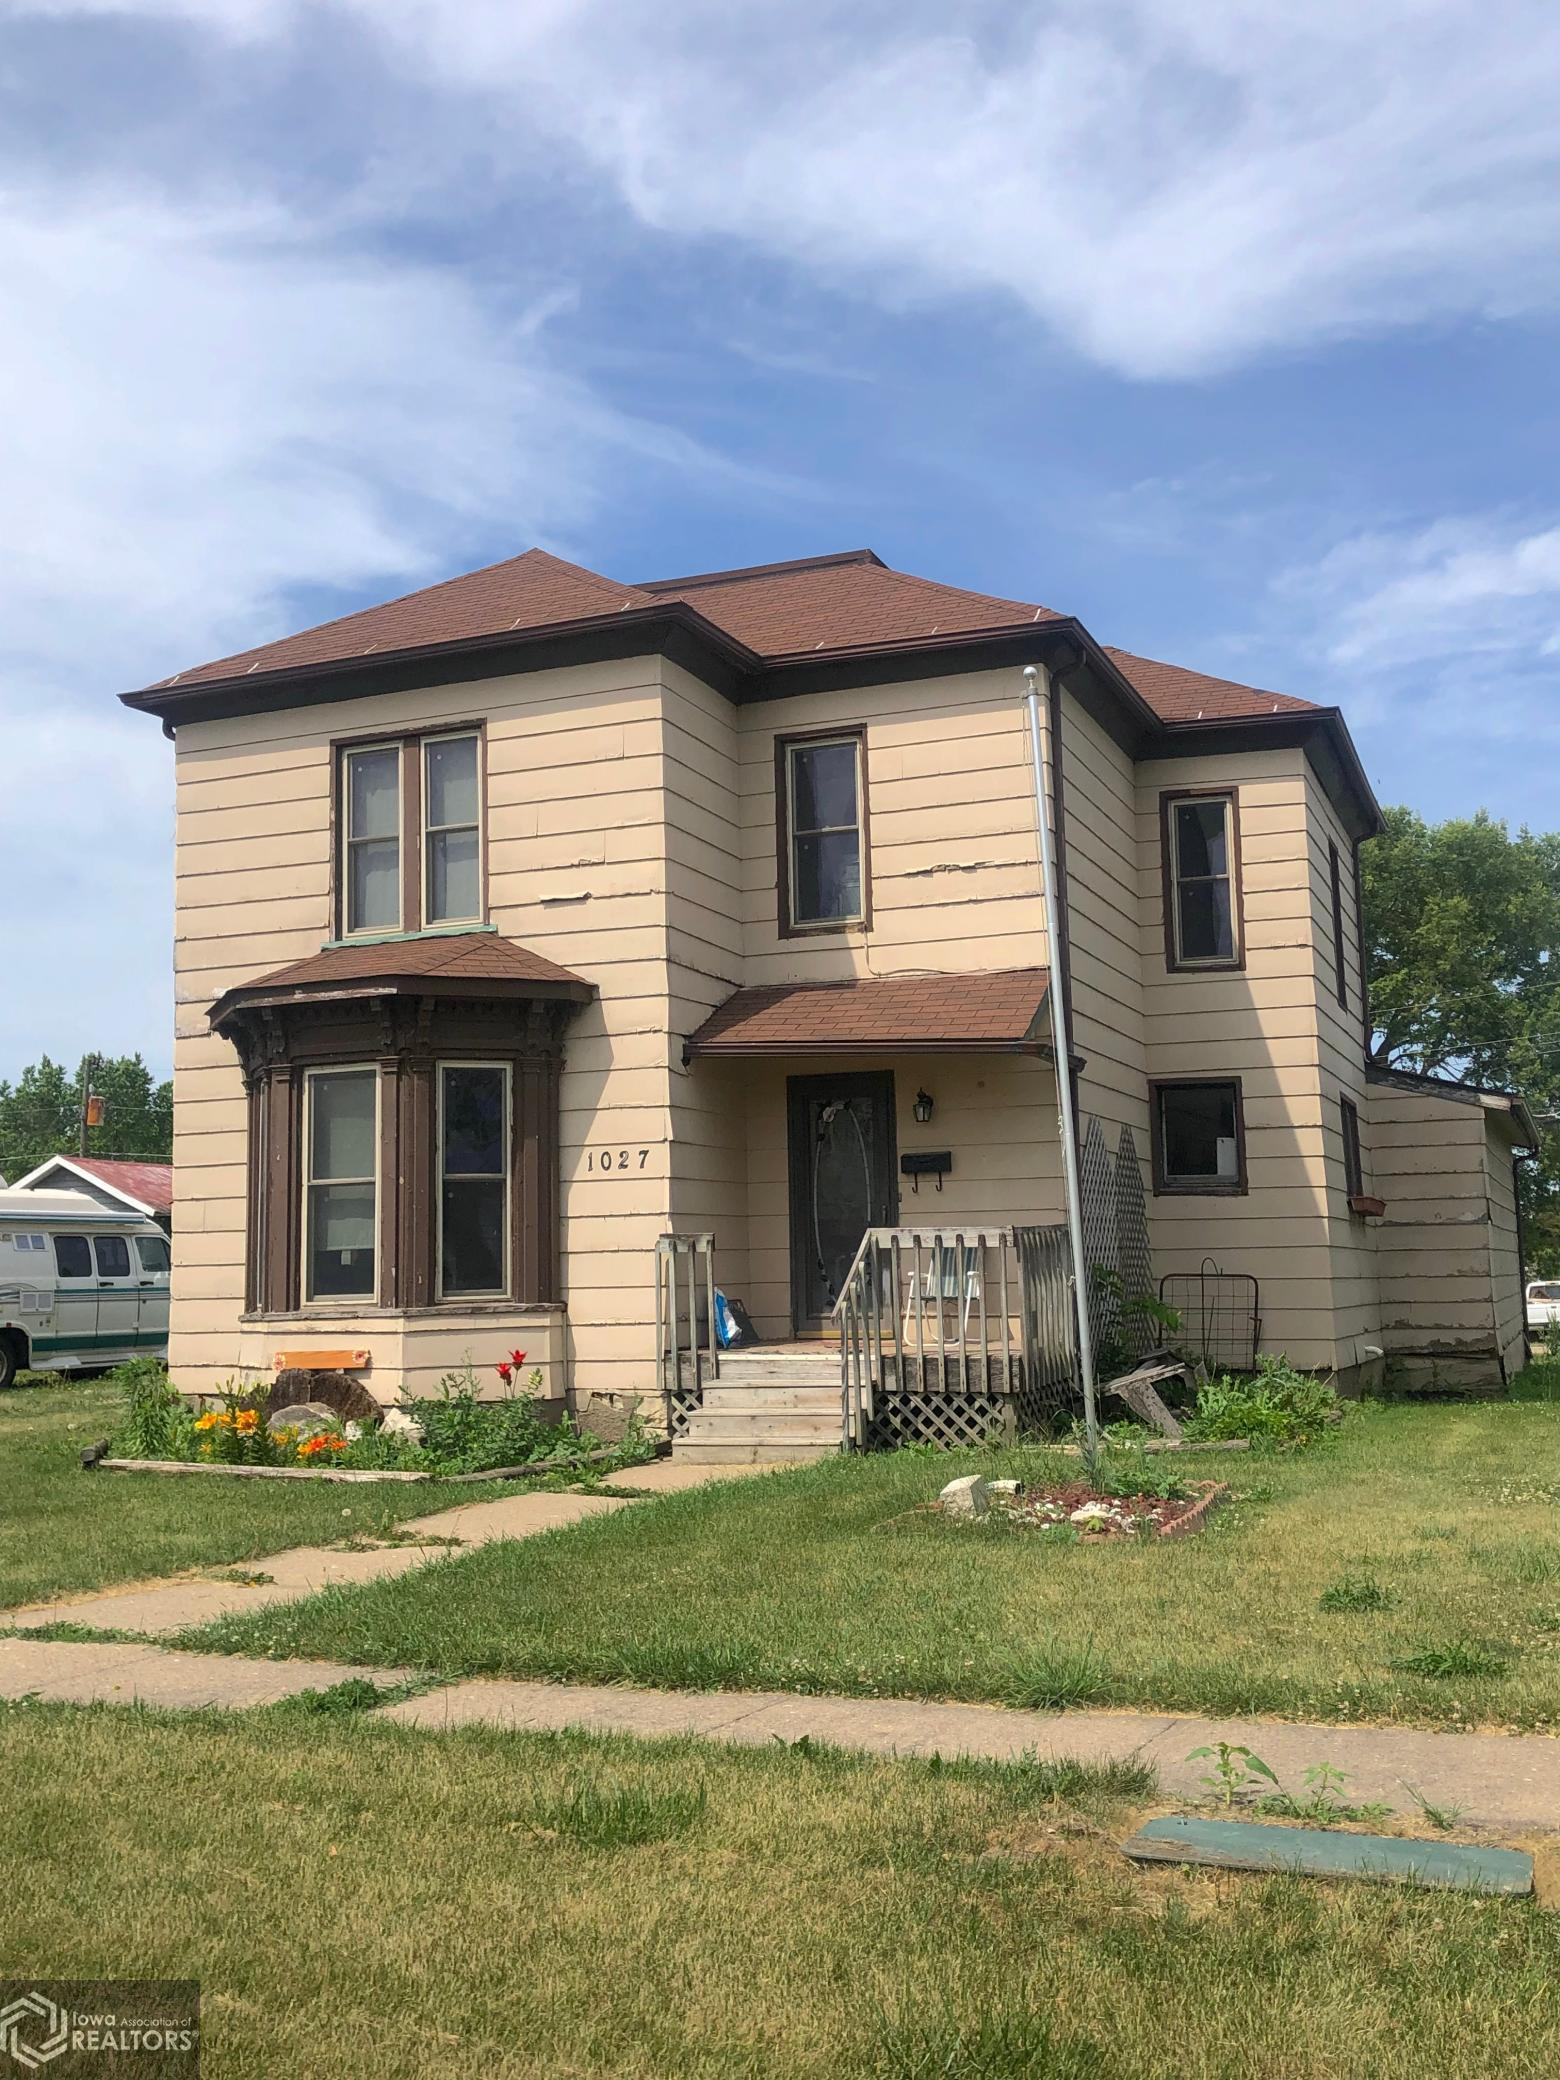 1027 Pearl, Grinnell, Iowa 50112-1969, 4 Bedrooms Bedrooms, ,1 BathroomBathrooms,Single Family,For Sale,Pearl,5702253